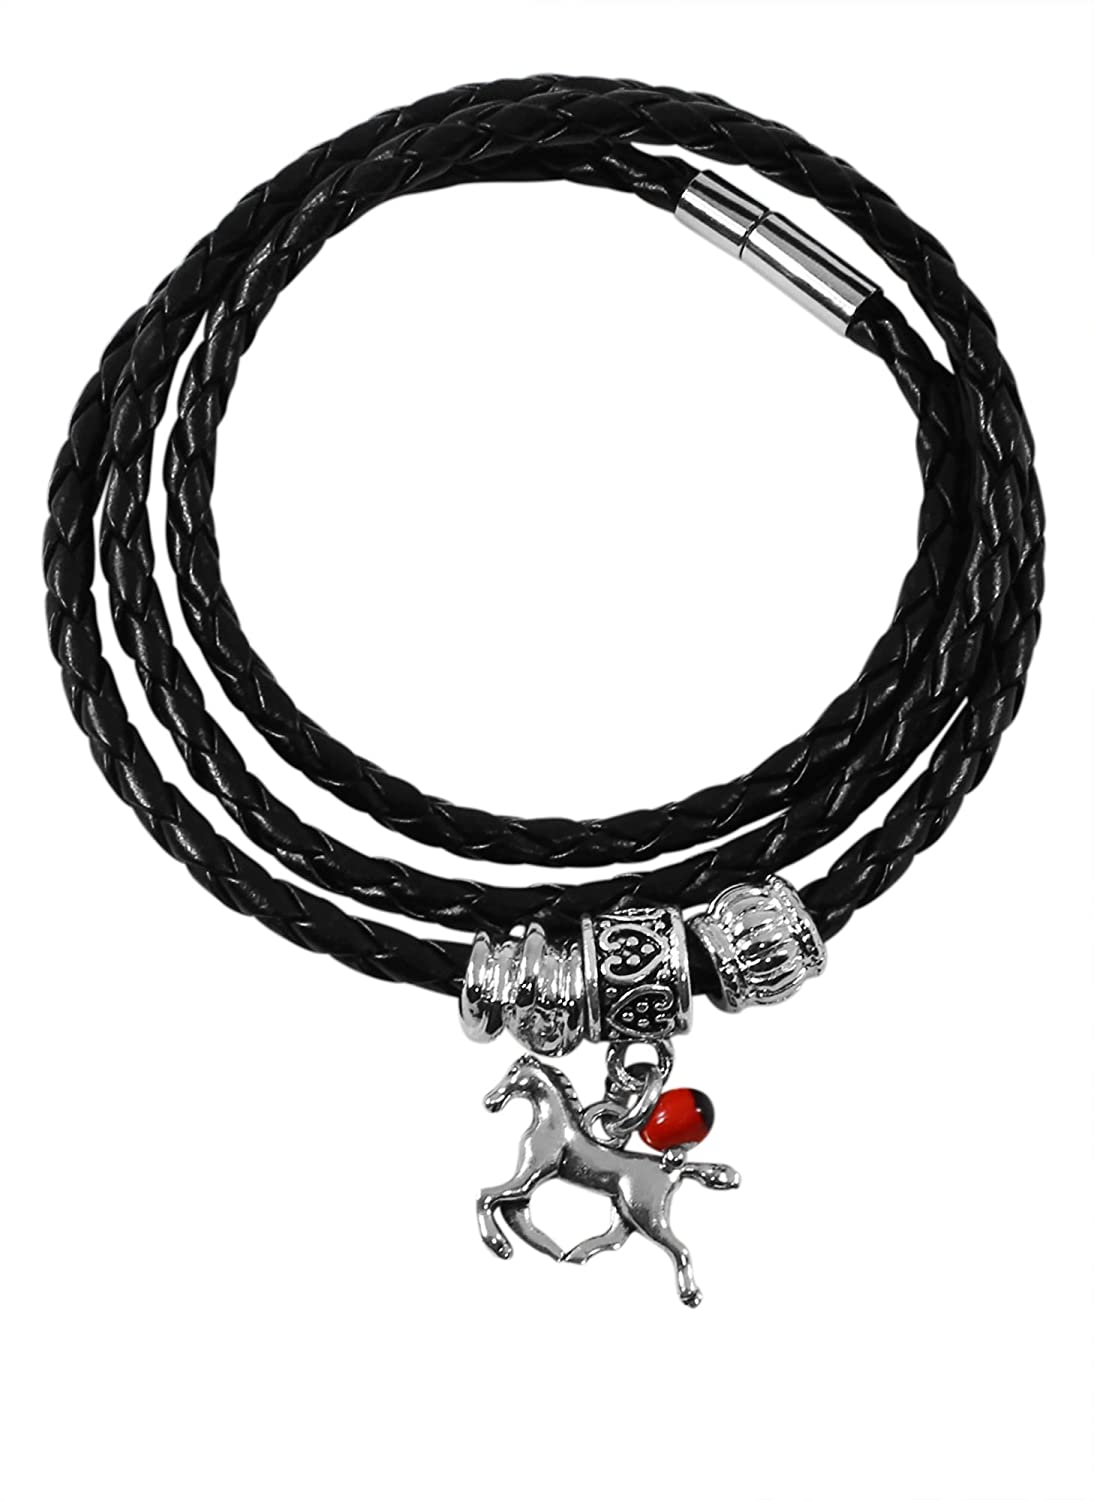 Peruvian Gift Bracelet for Women - Huayruro Red Seeds, Horse Charm - Handmade Jewelry by Evelyn Brooks